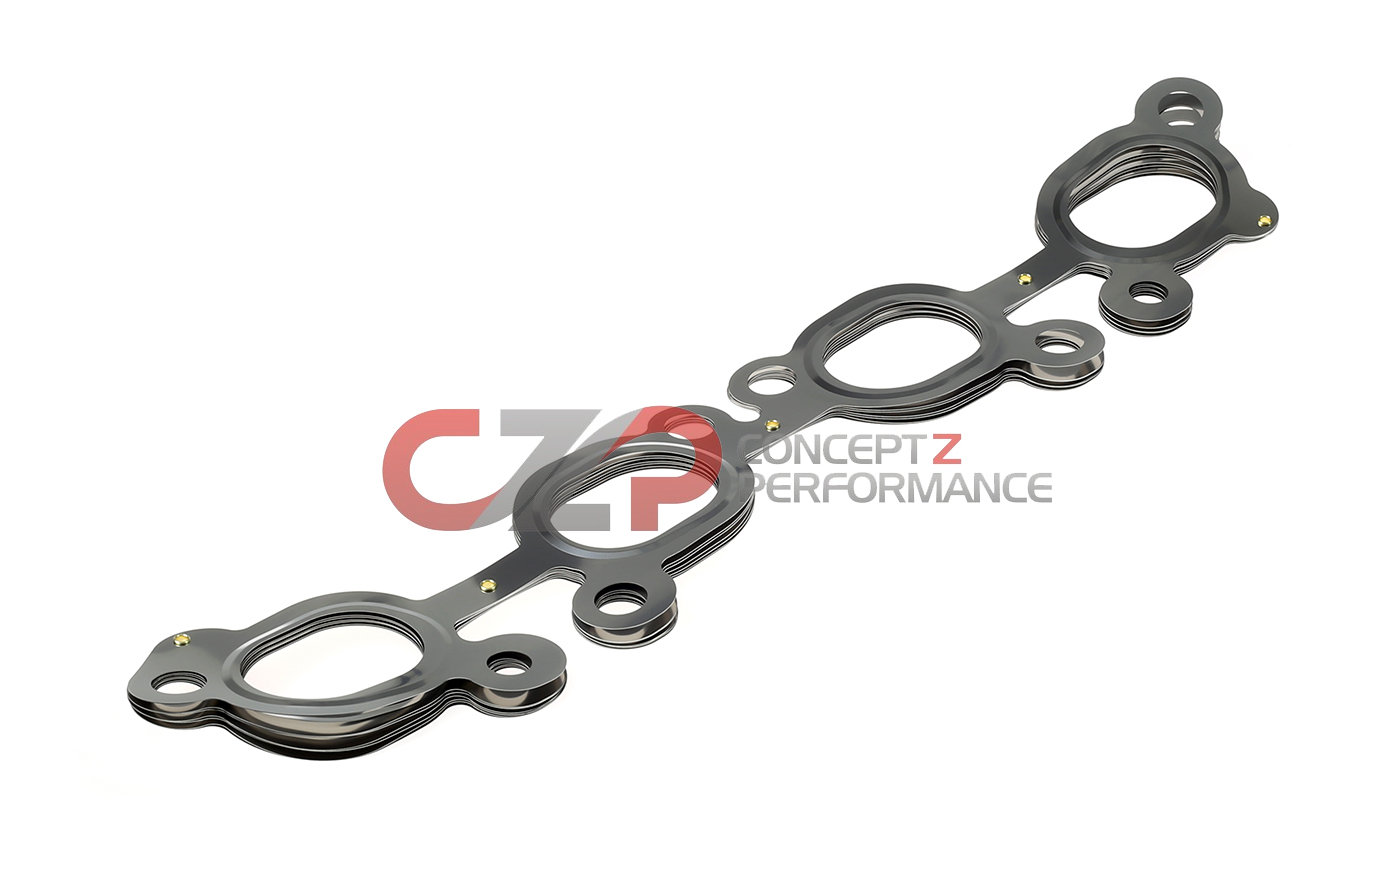 Exhaust System Tips Amp Accessories Gaskets Amp Hardware